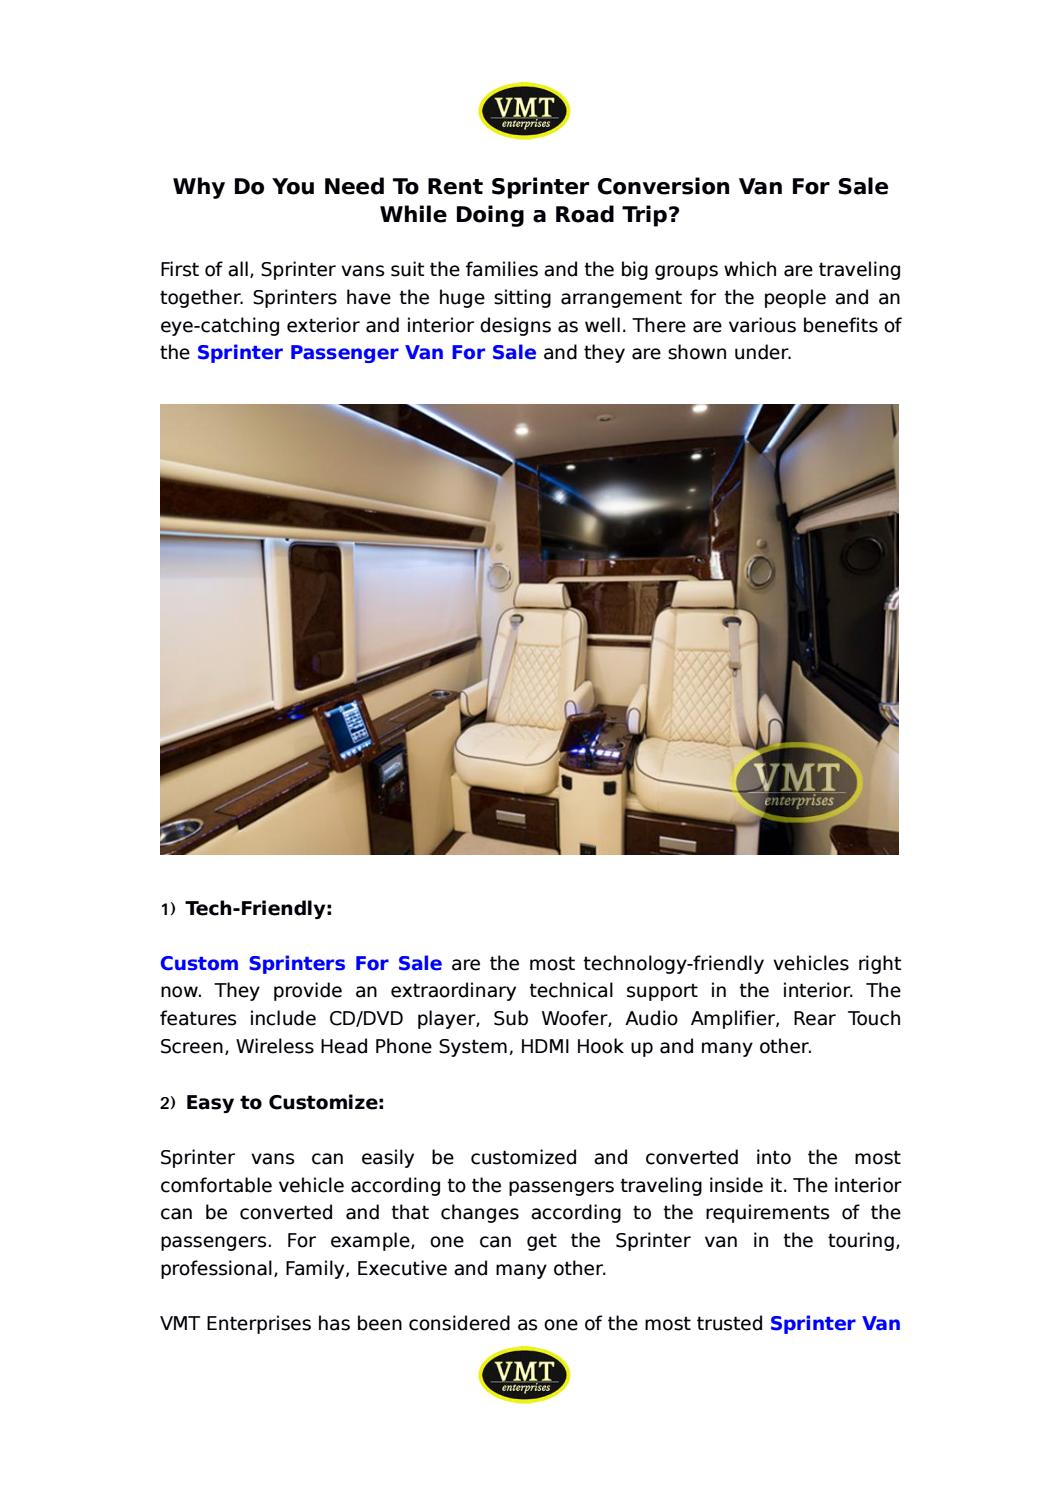 Why You Need To Rent Sprinter Passenger Van For Sale While Doing A Road Trip By Vmt Enterprises Issuu